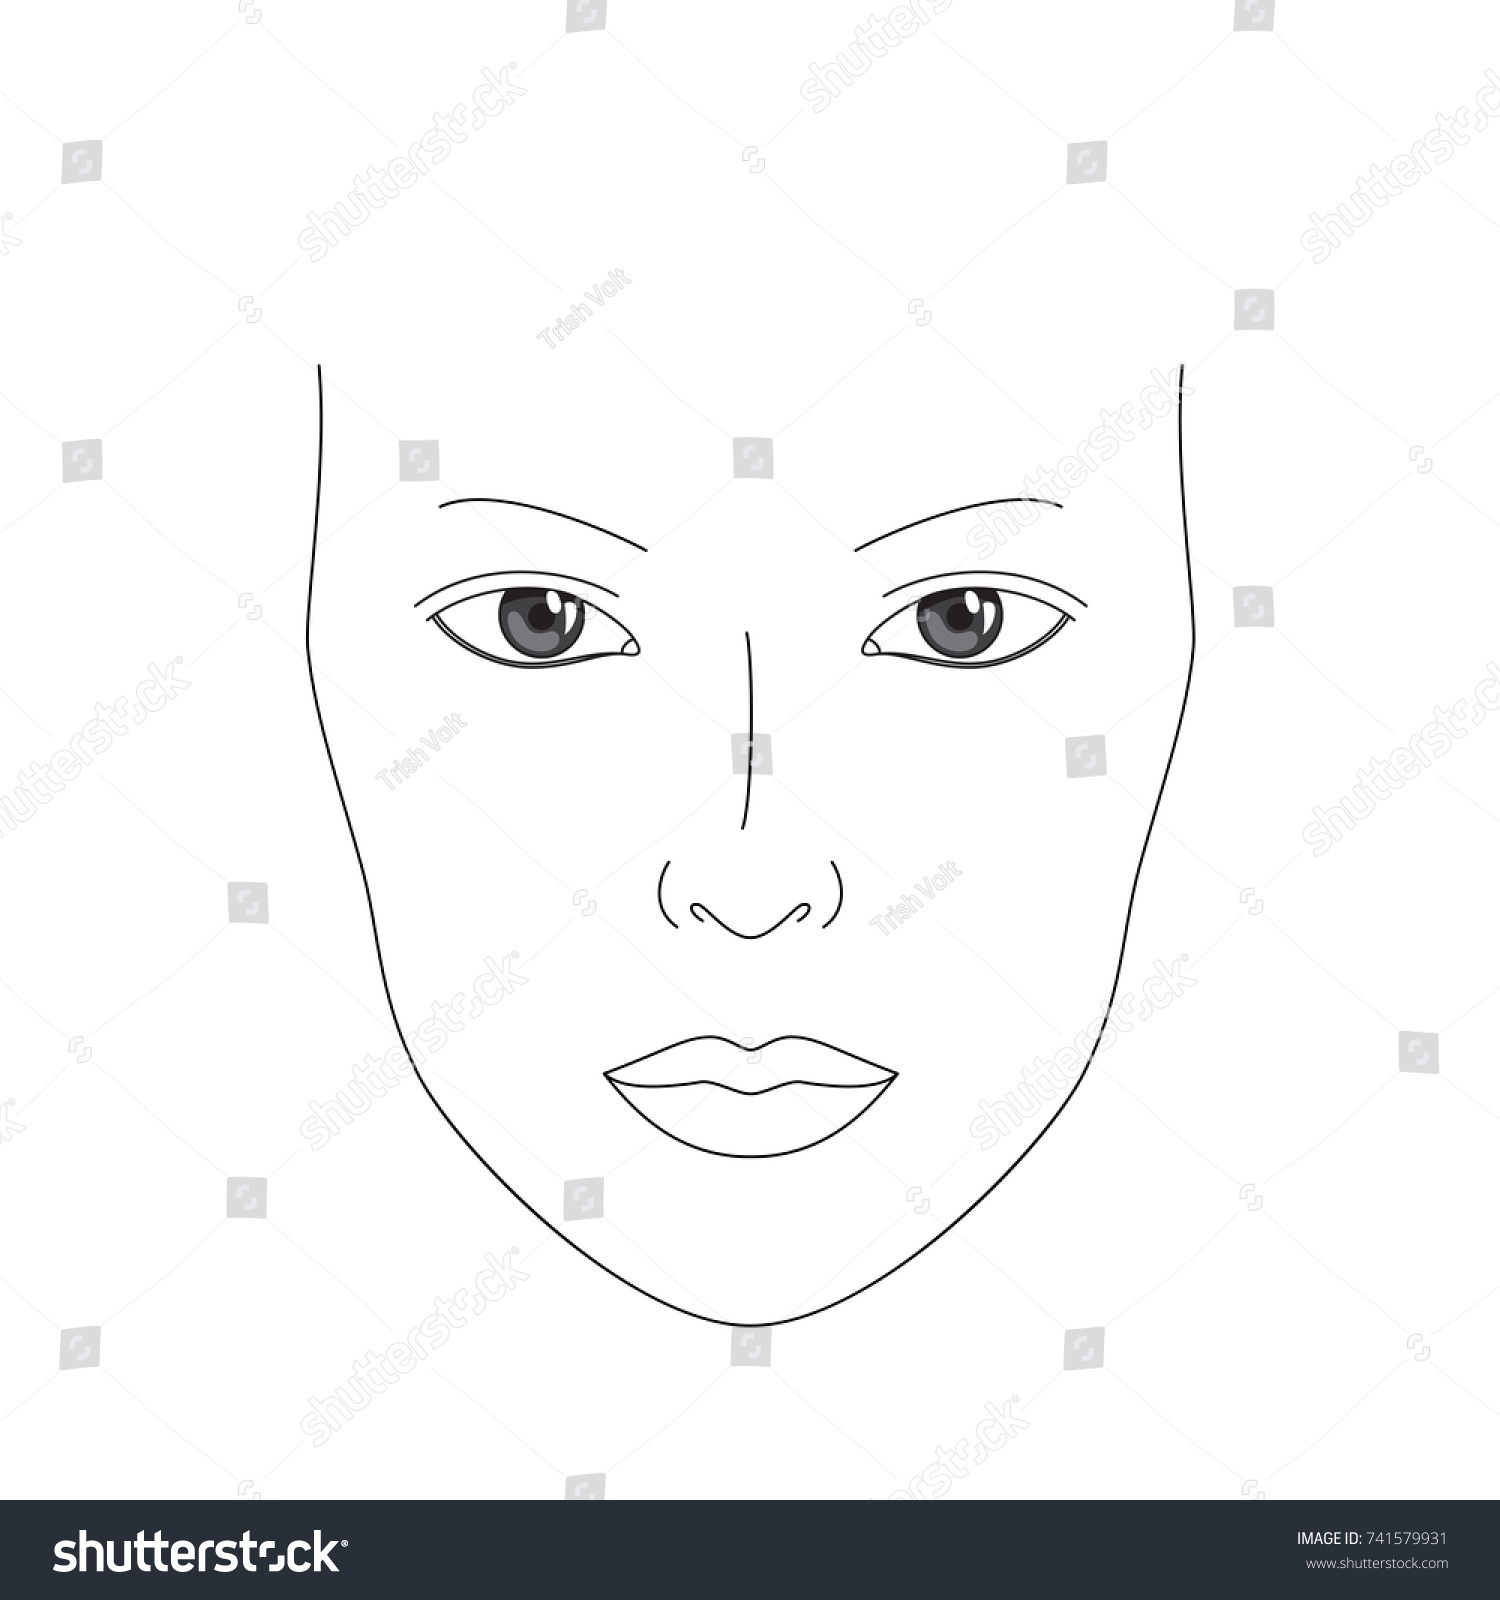 Vector Drawing Lines Quiz : Make chart face realistic female stock vector